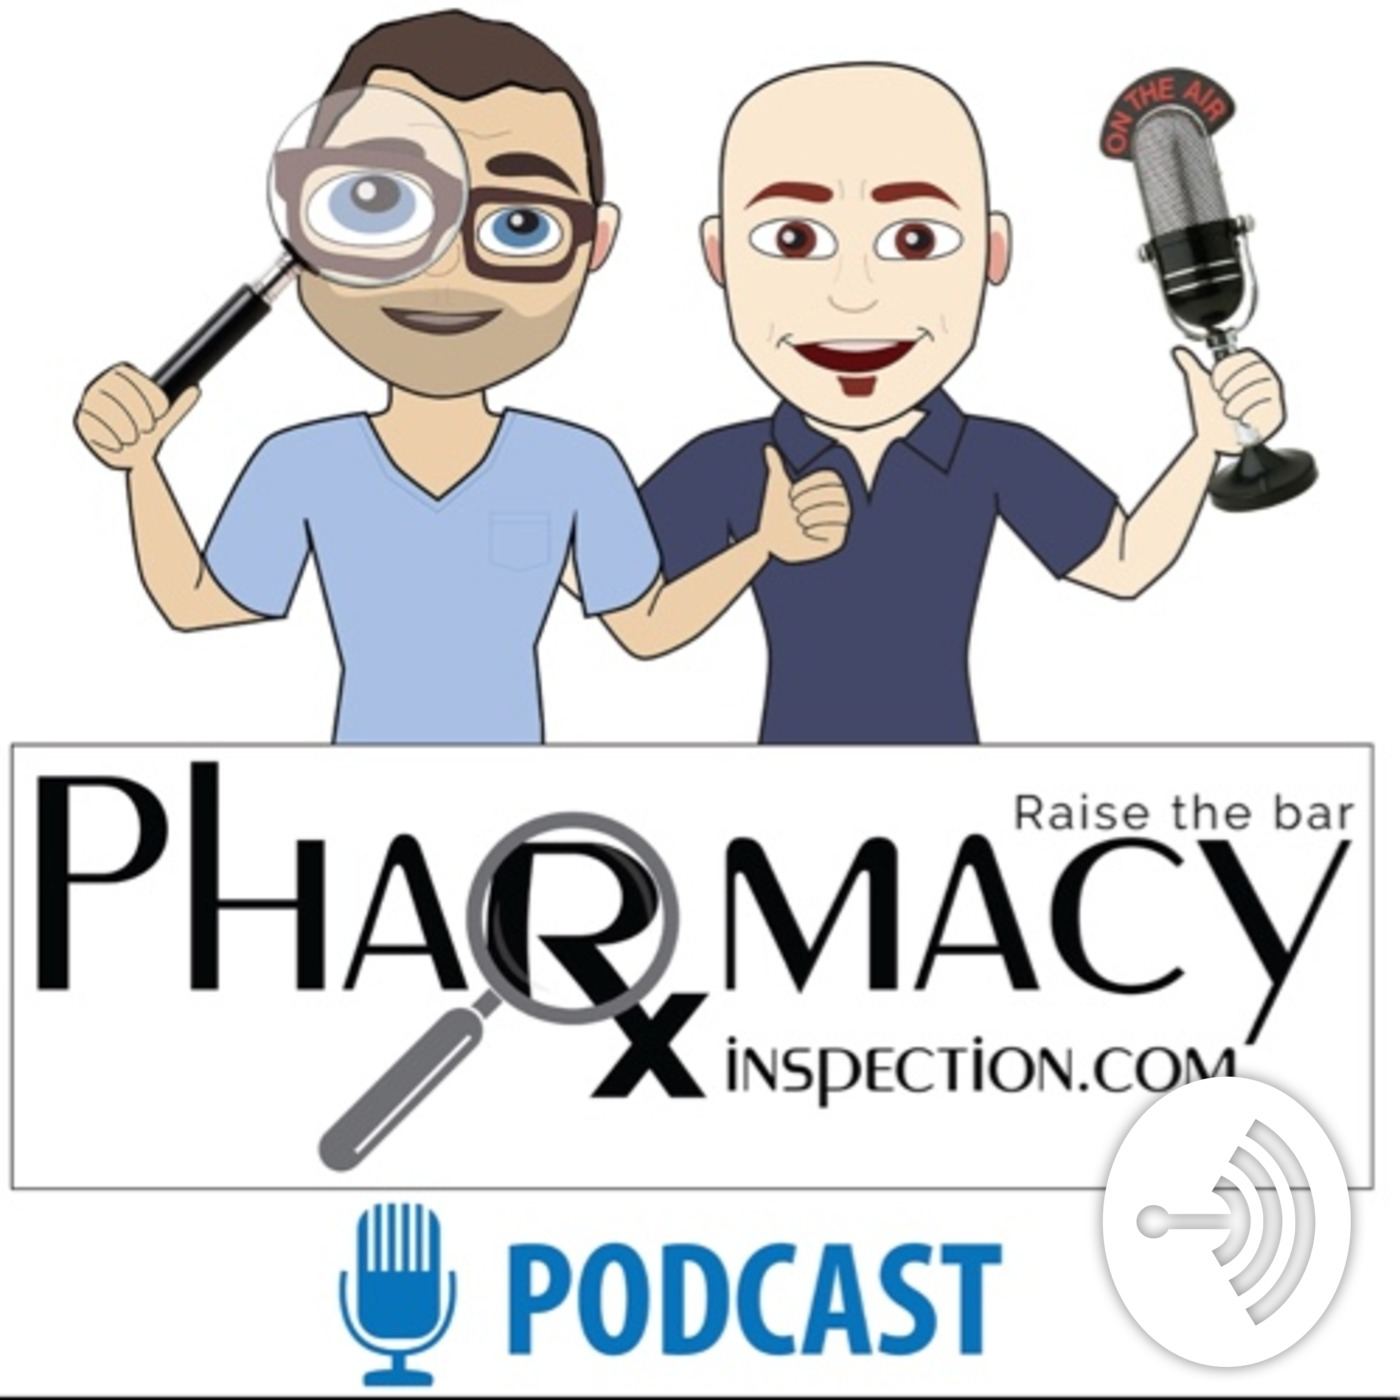 Pharmacy Inspection Podcast Episode 27 - USP 797 Revision